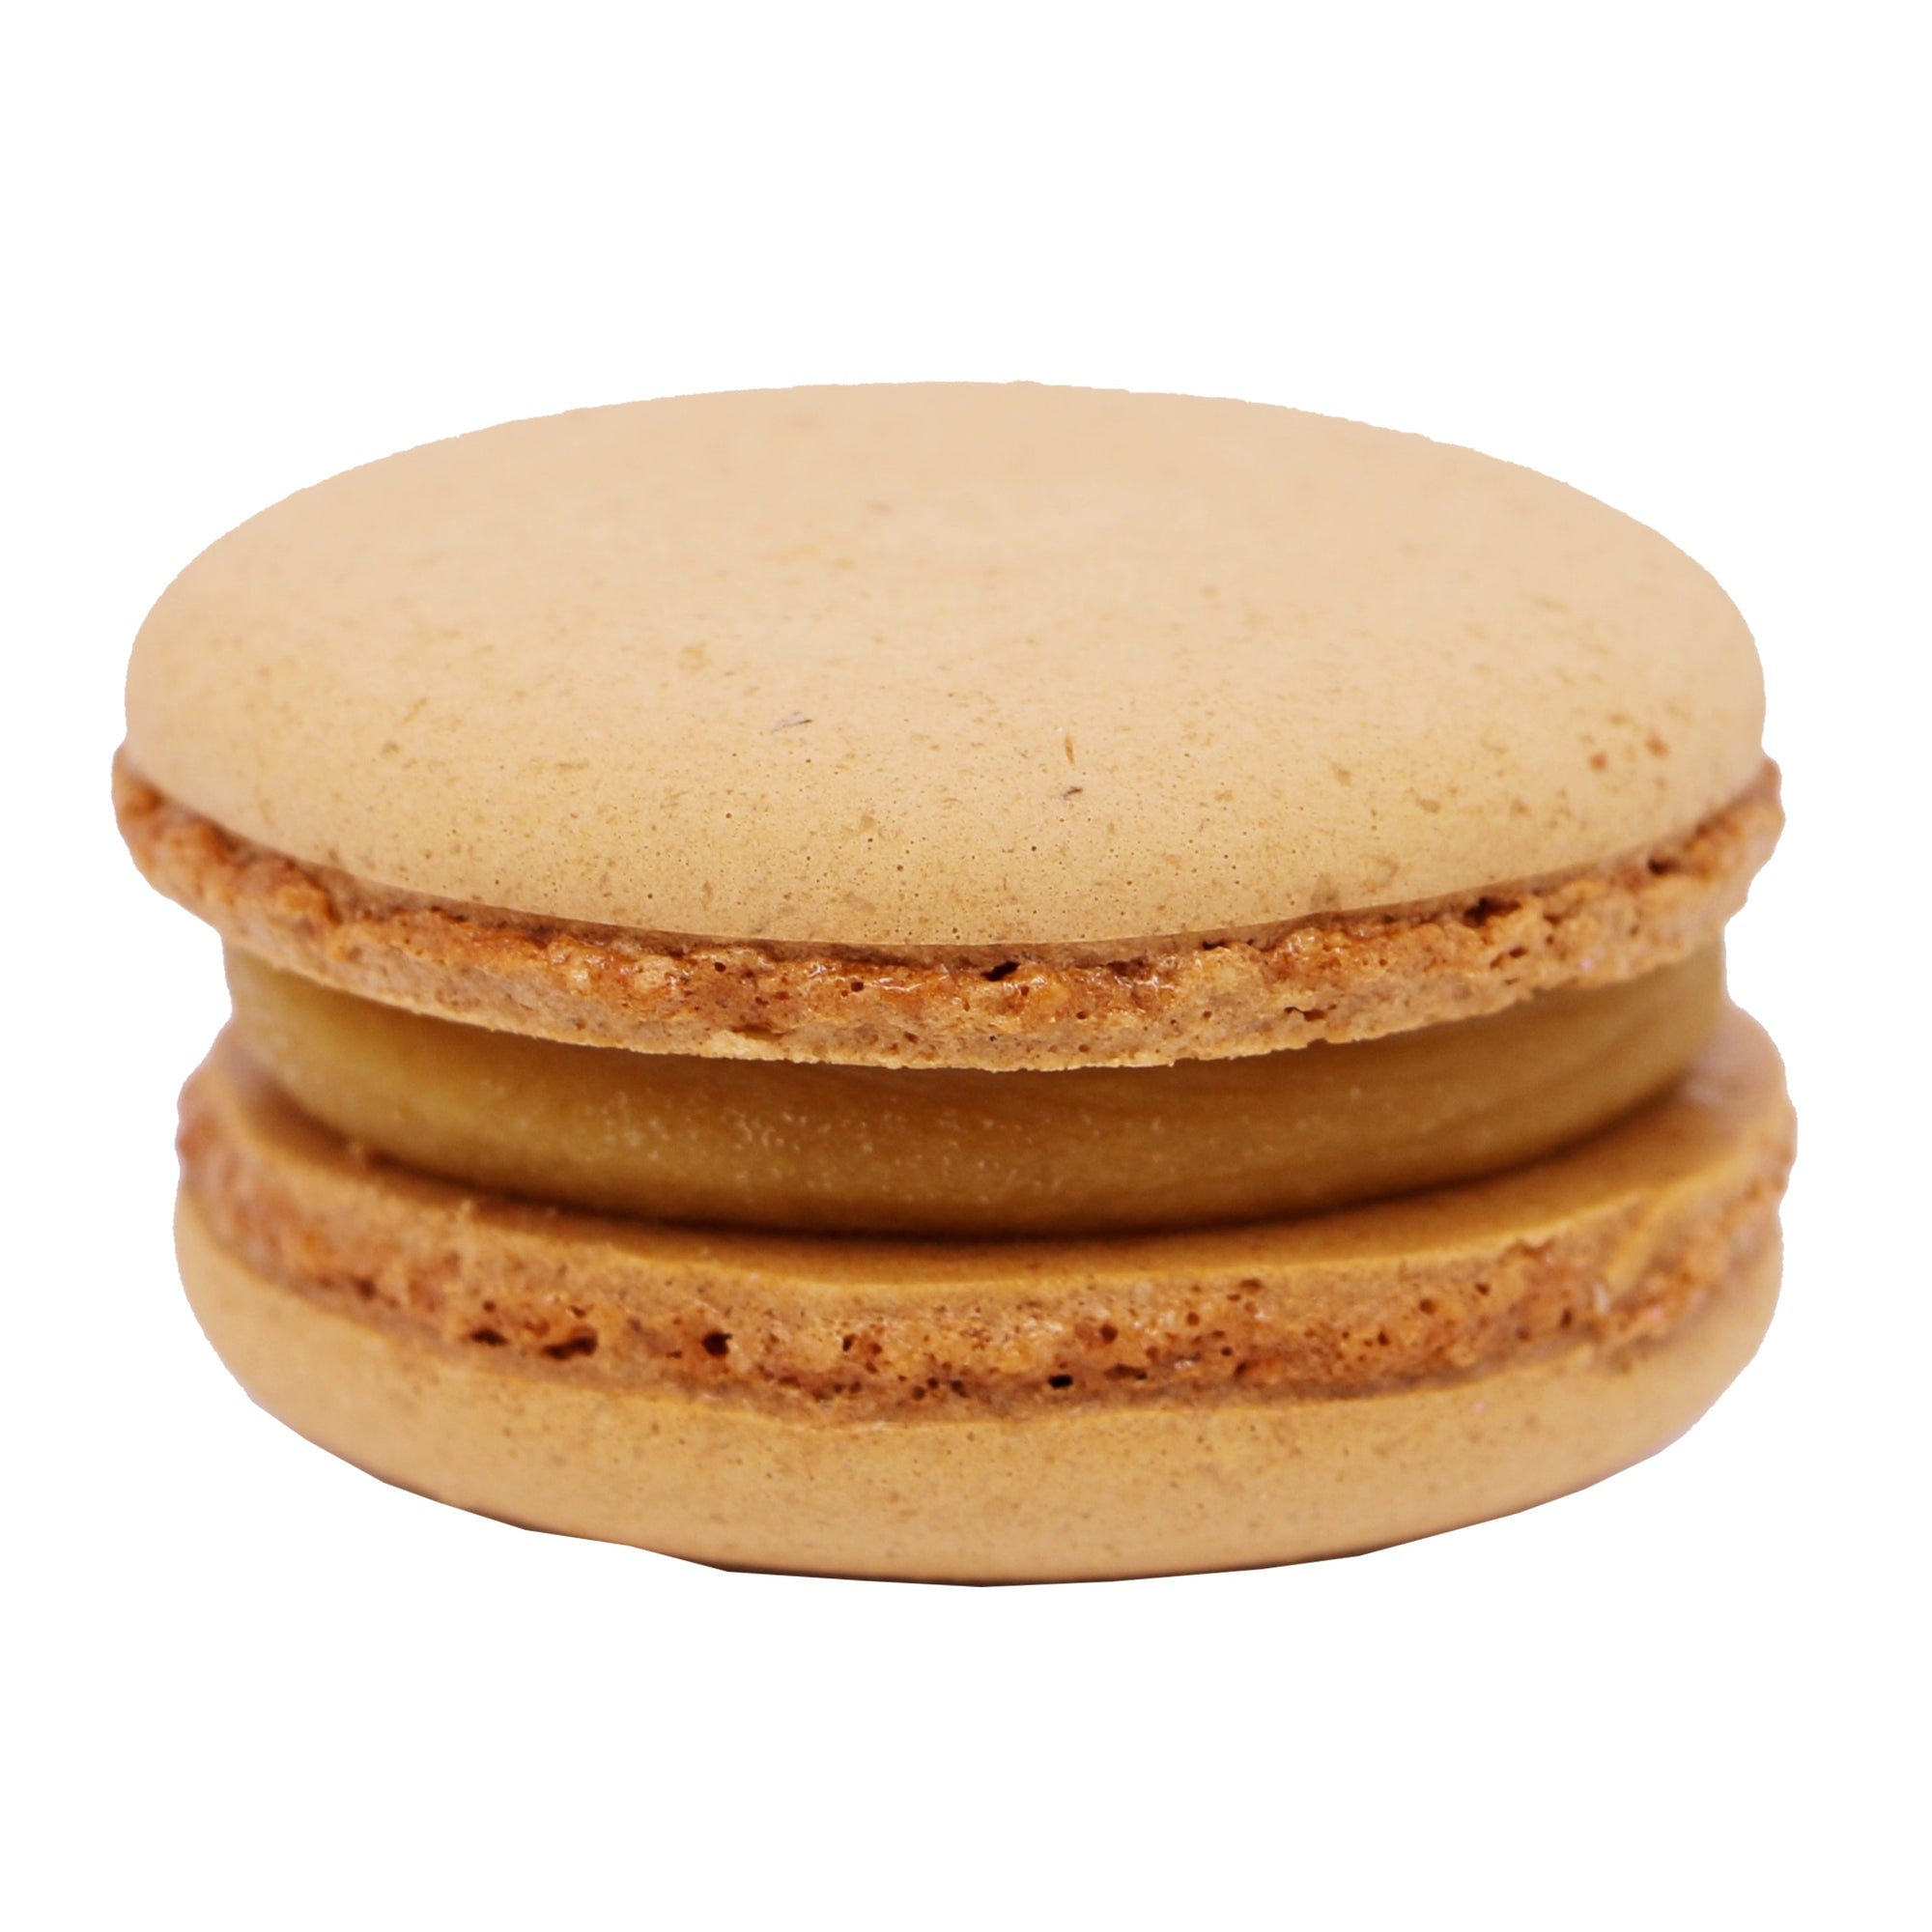 Macaron - Salted Caramel - Treats2eat - Wedding & Birthday Party Dessert Catering Near Me